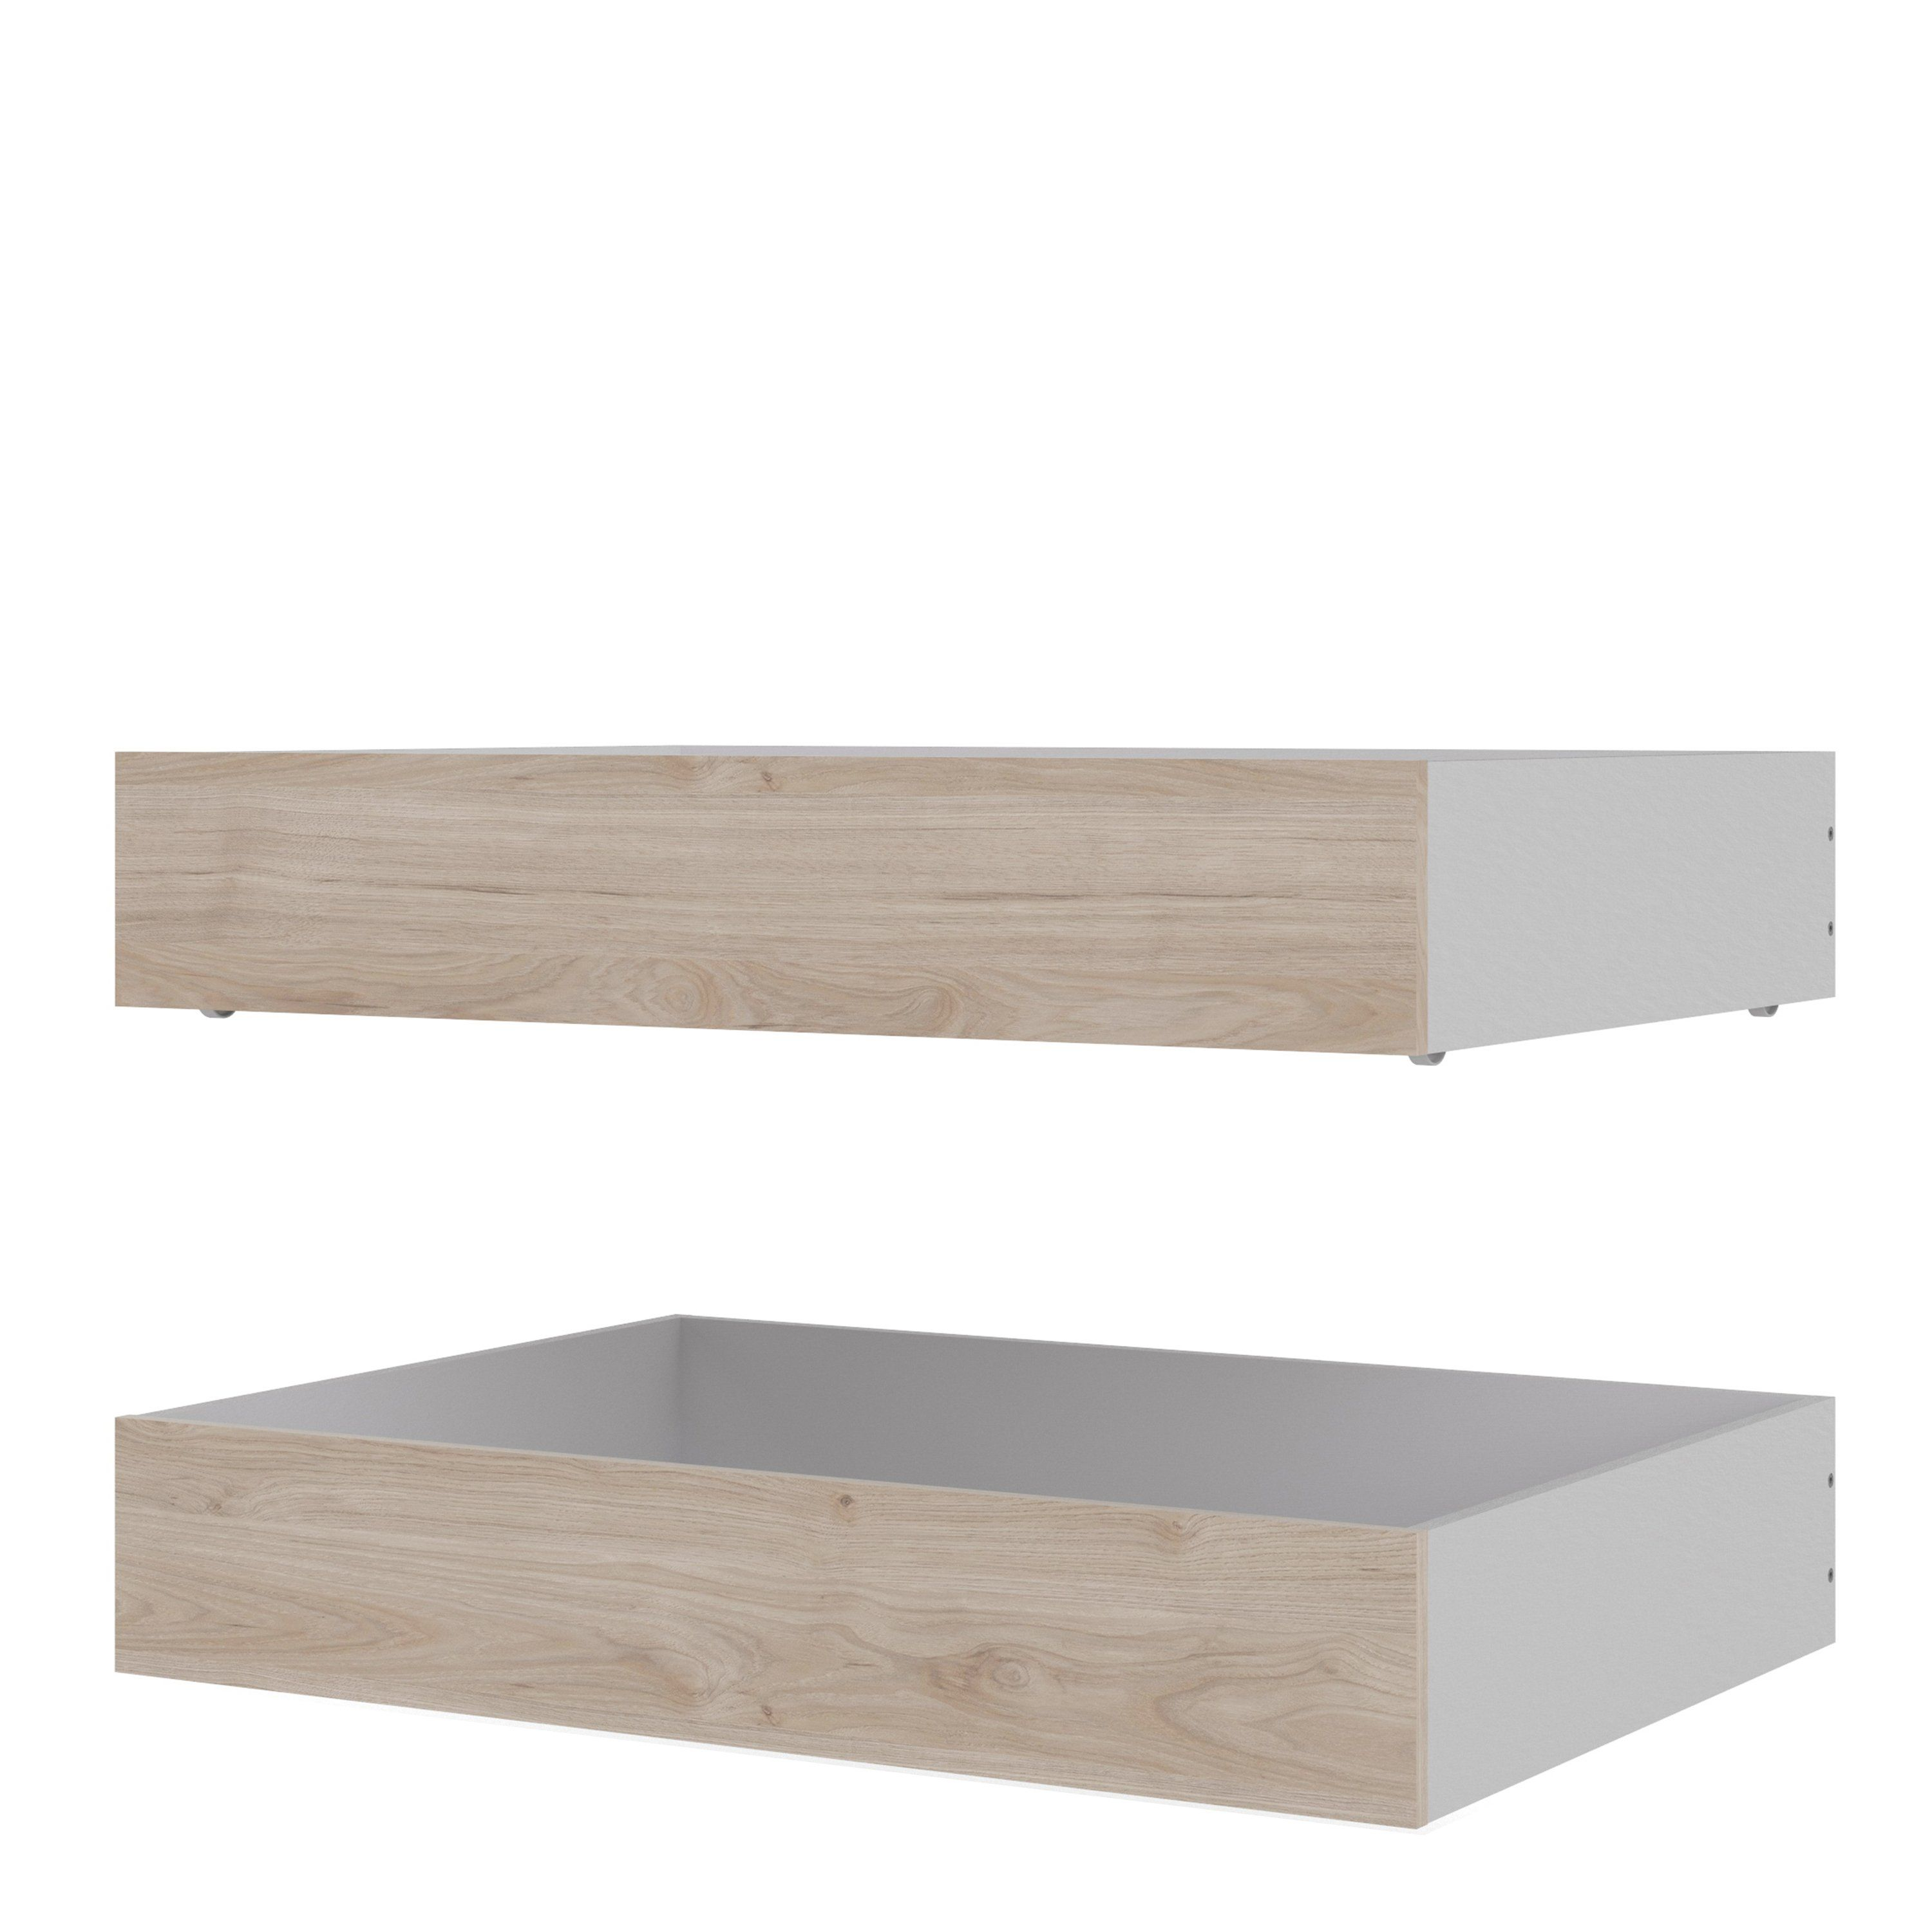 Naia Set of 2 Underbed Drawers (for Single or Double beds) in Jackson Hickory Oak